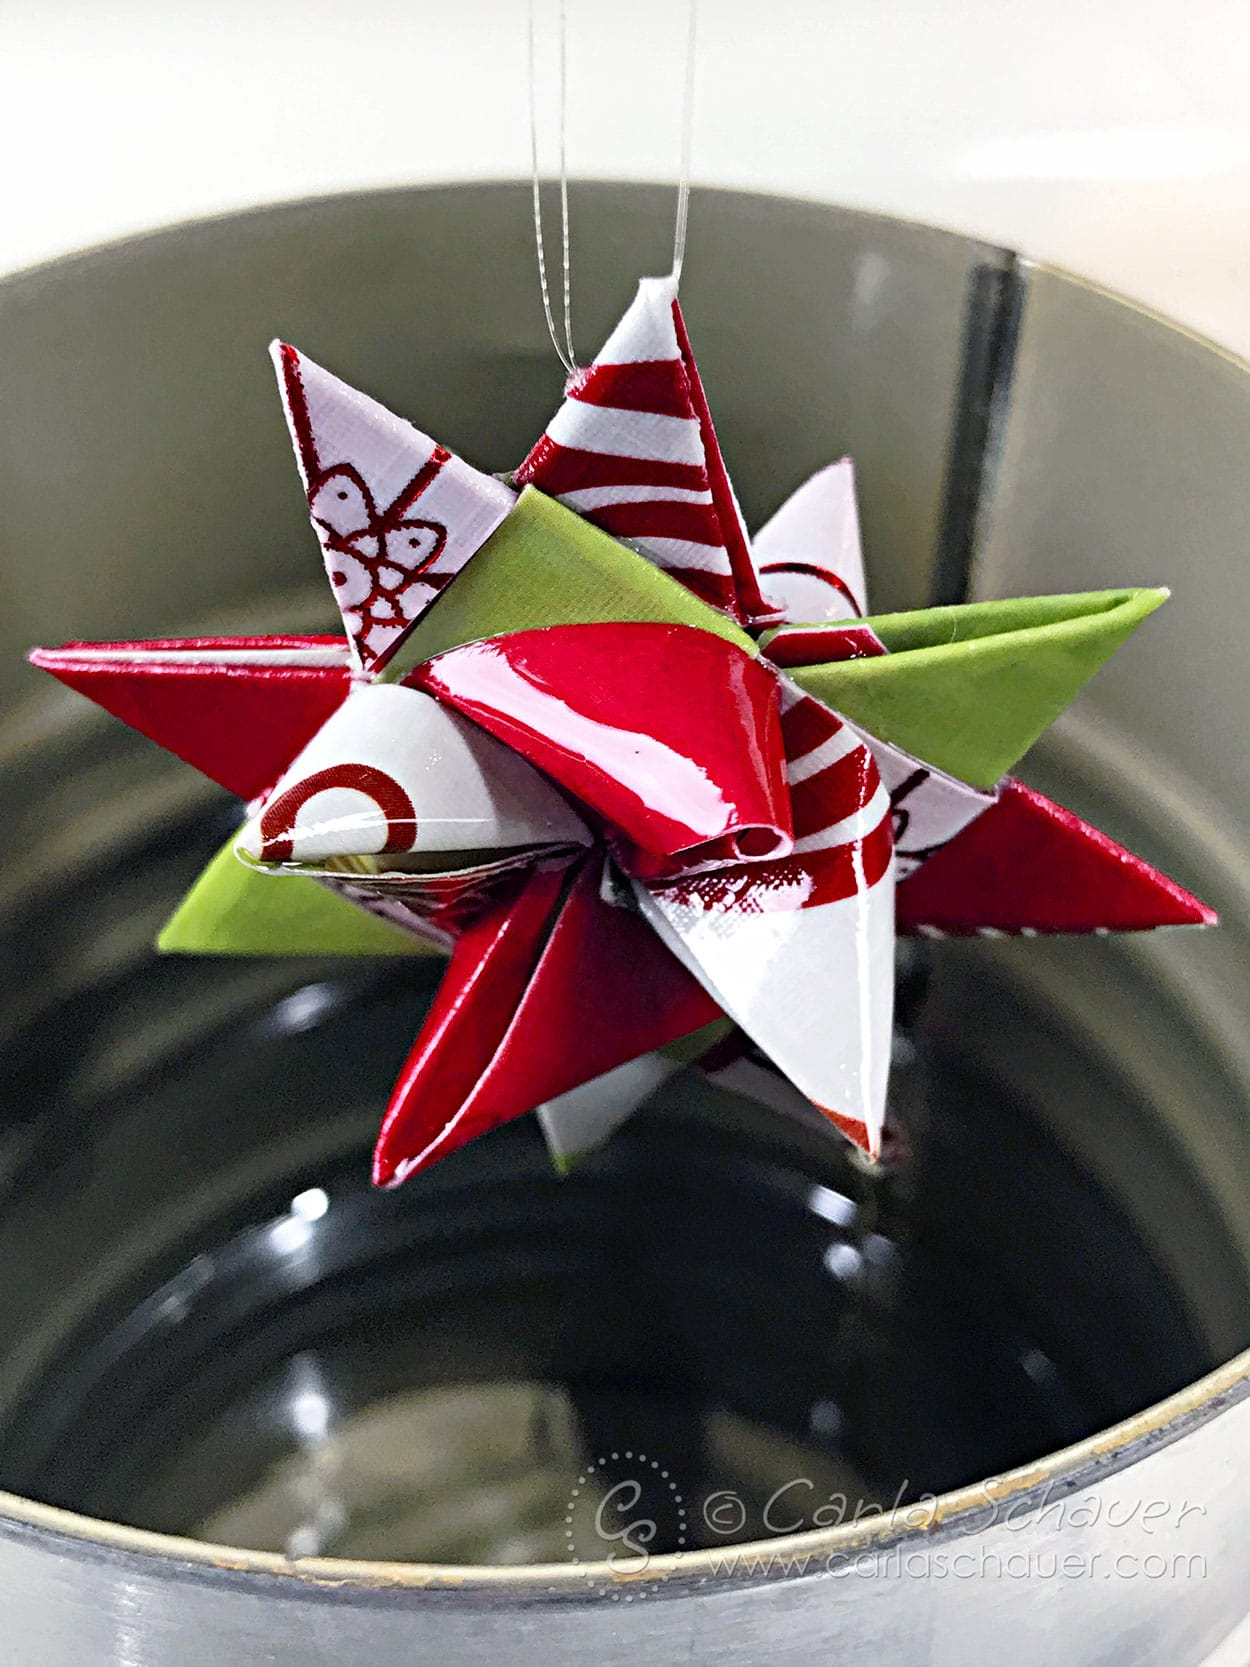 Folded German Star paper ornament after dipping in melted paraffin.